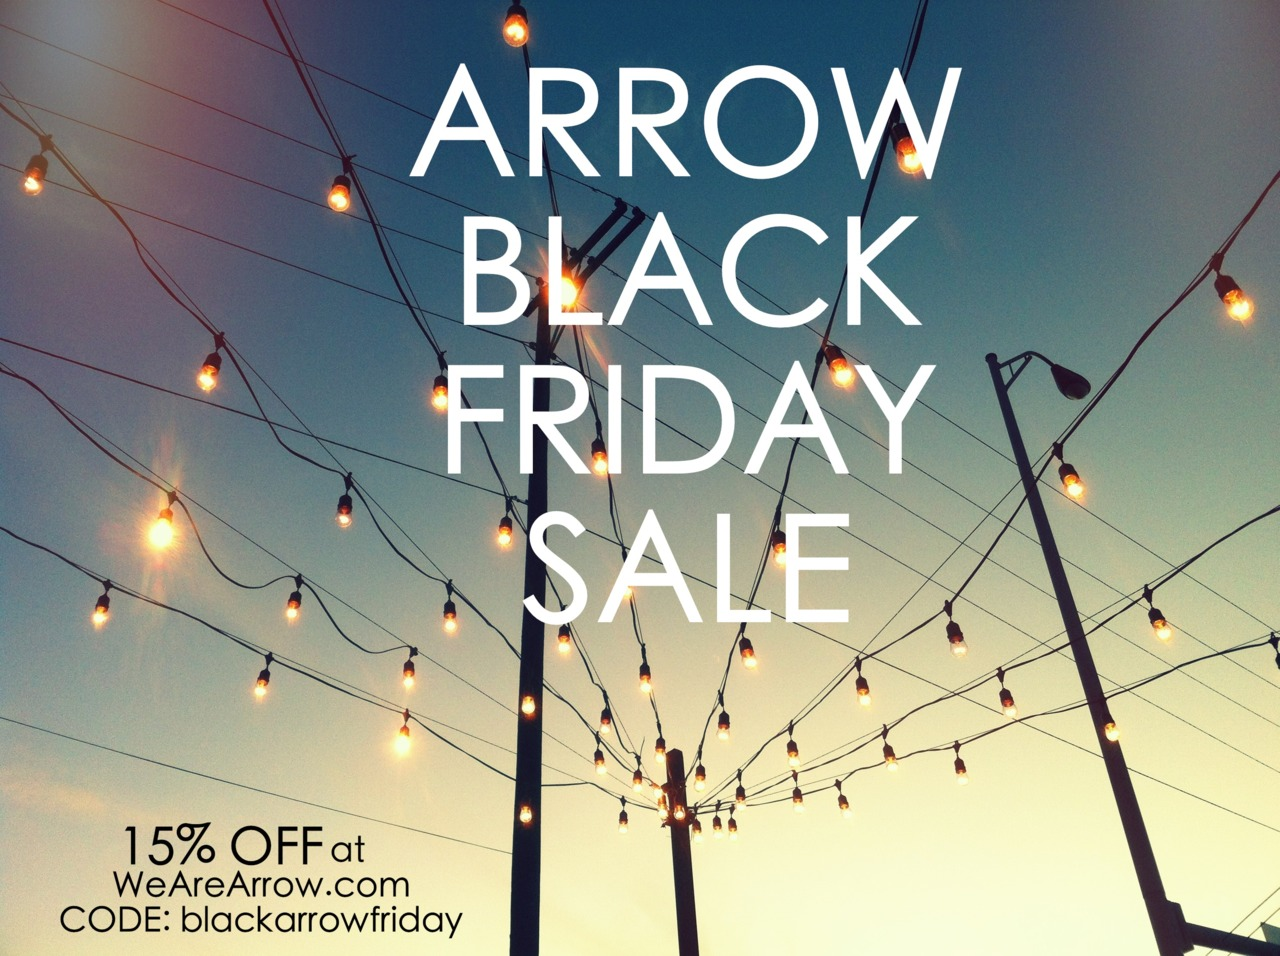 FRIENDS! Getting your crazy shop on tomorrow morning? Instead of waiting in line you can order, still in bed or hammock, from ARROW! We're running a special for Black Friday, check it out!